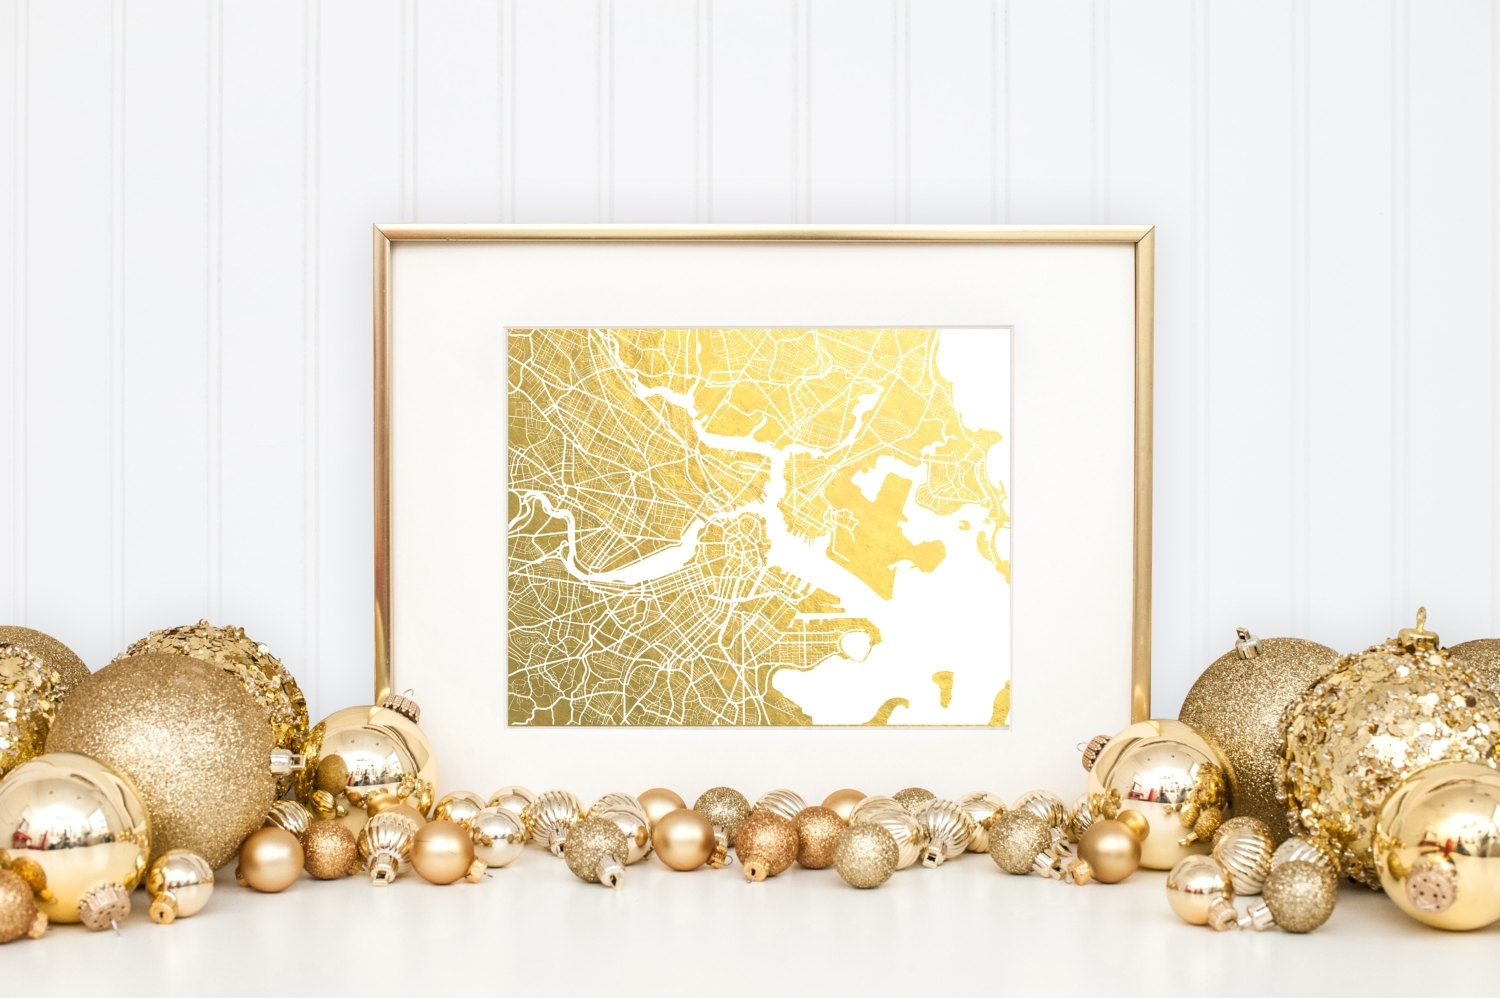 Boston Map Gold Foil Print Boston Wall Art Gold Foil Map, Gold Wall For Recent Gold Foil Wall Art (View 15 of 20)